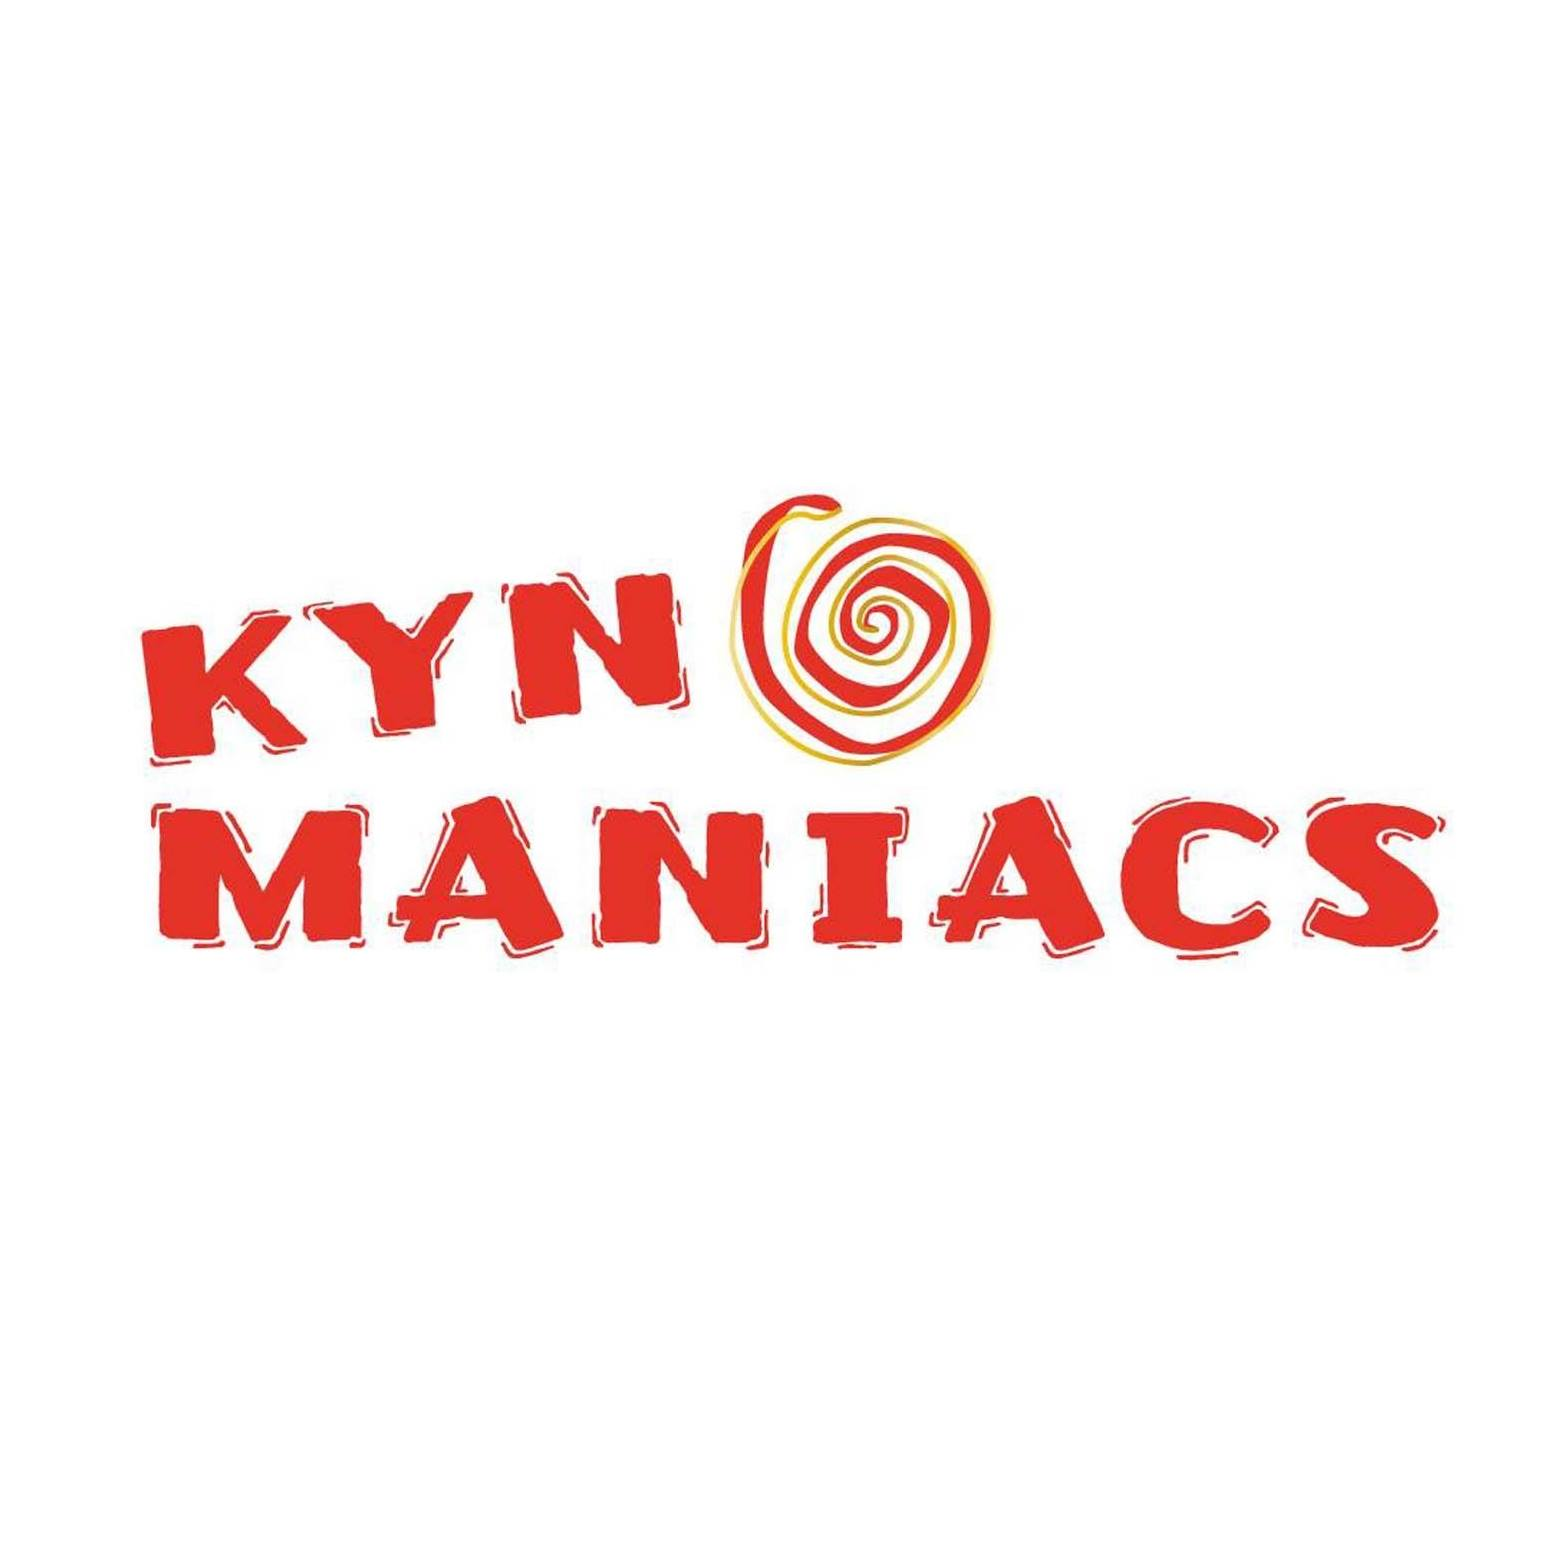 Kynomaniacs